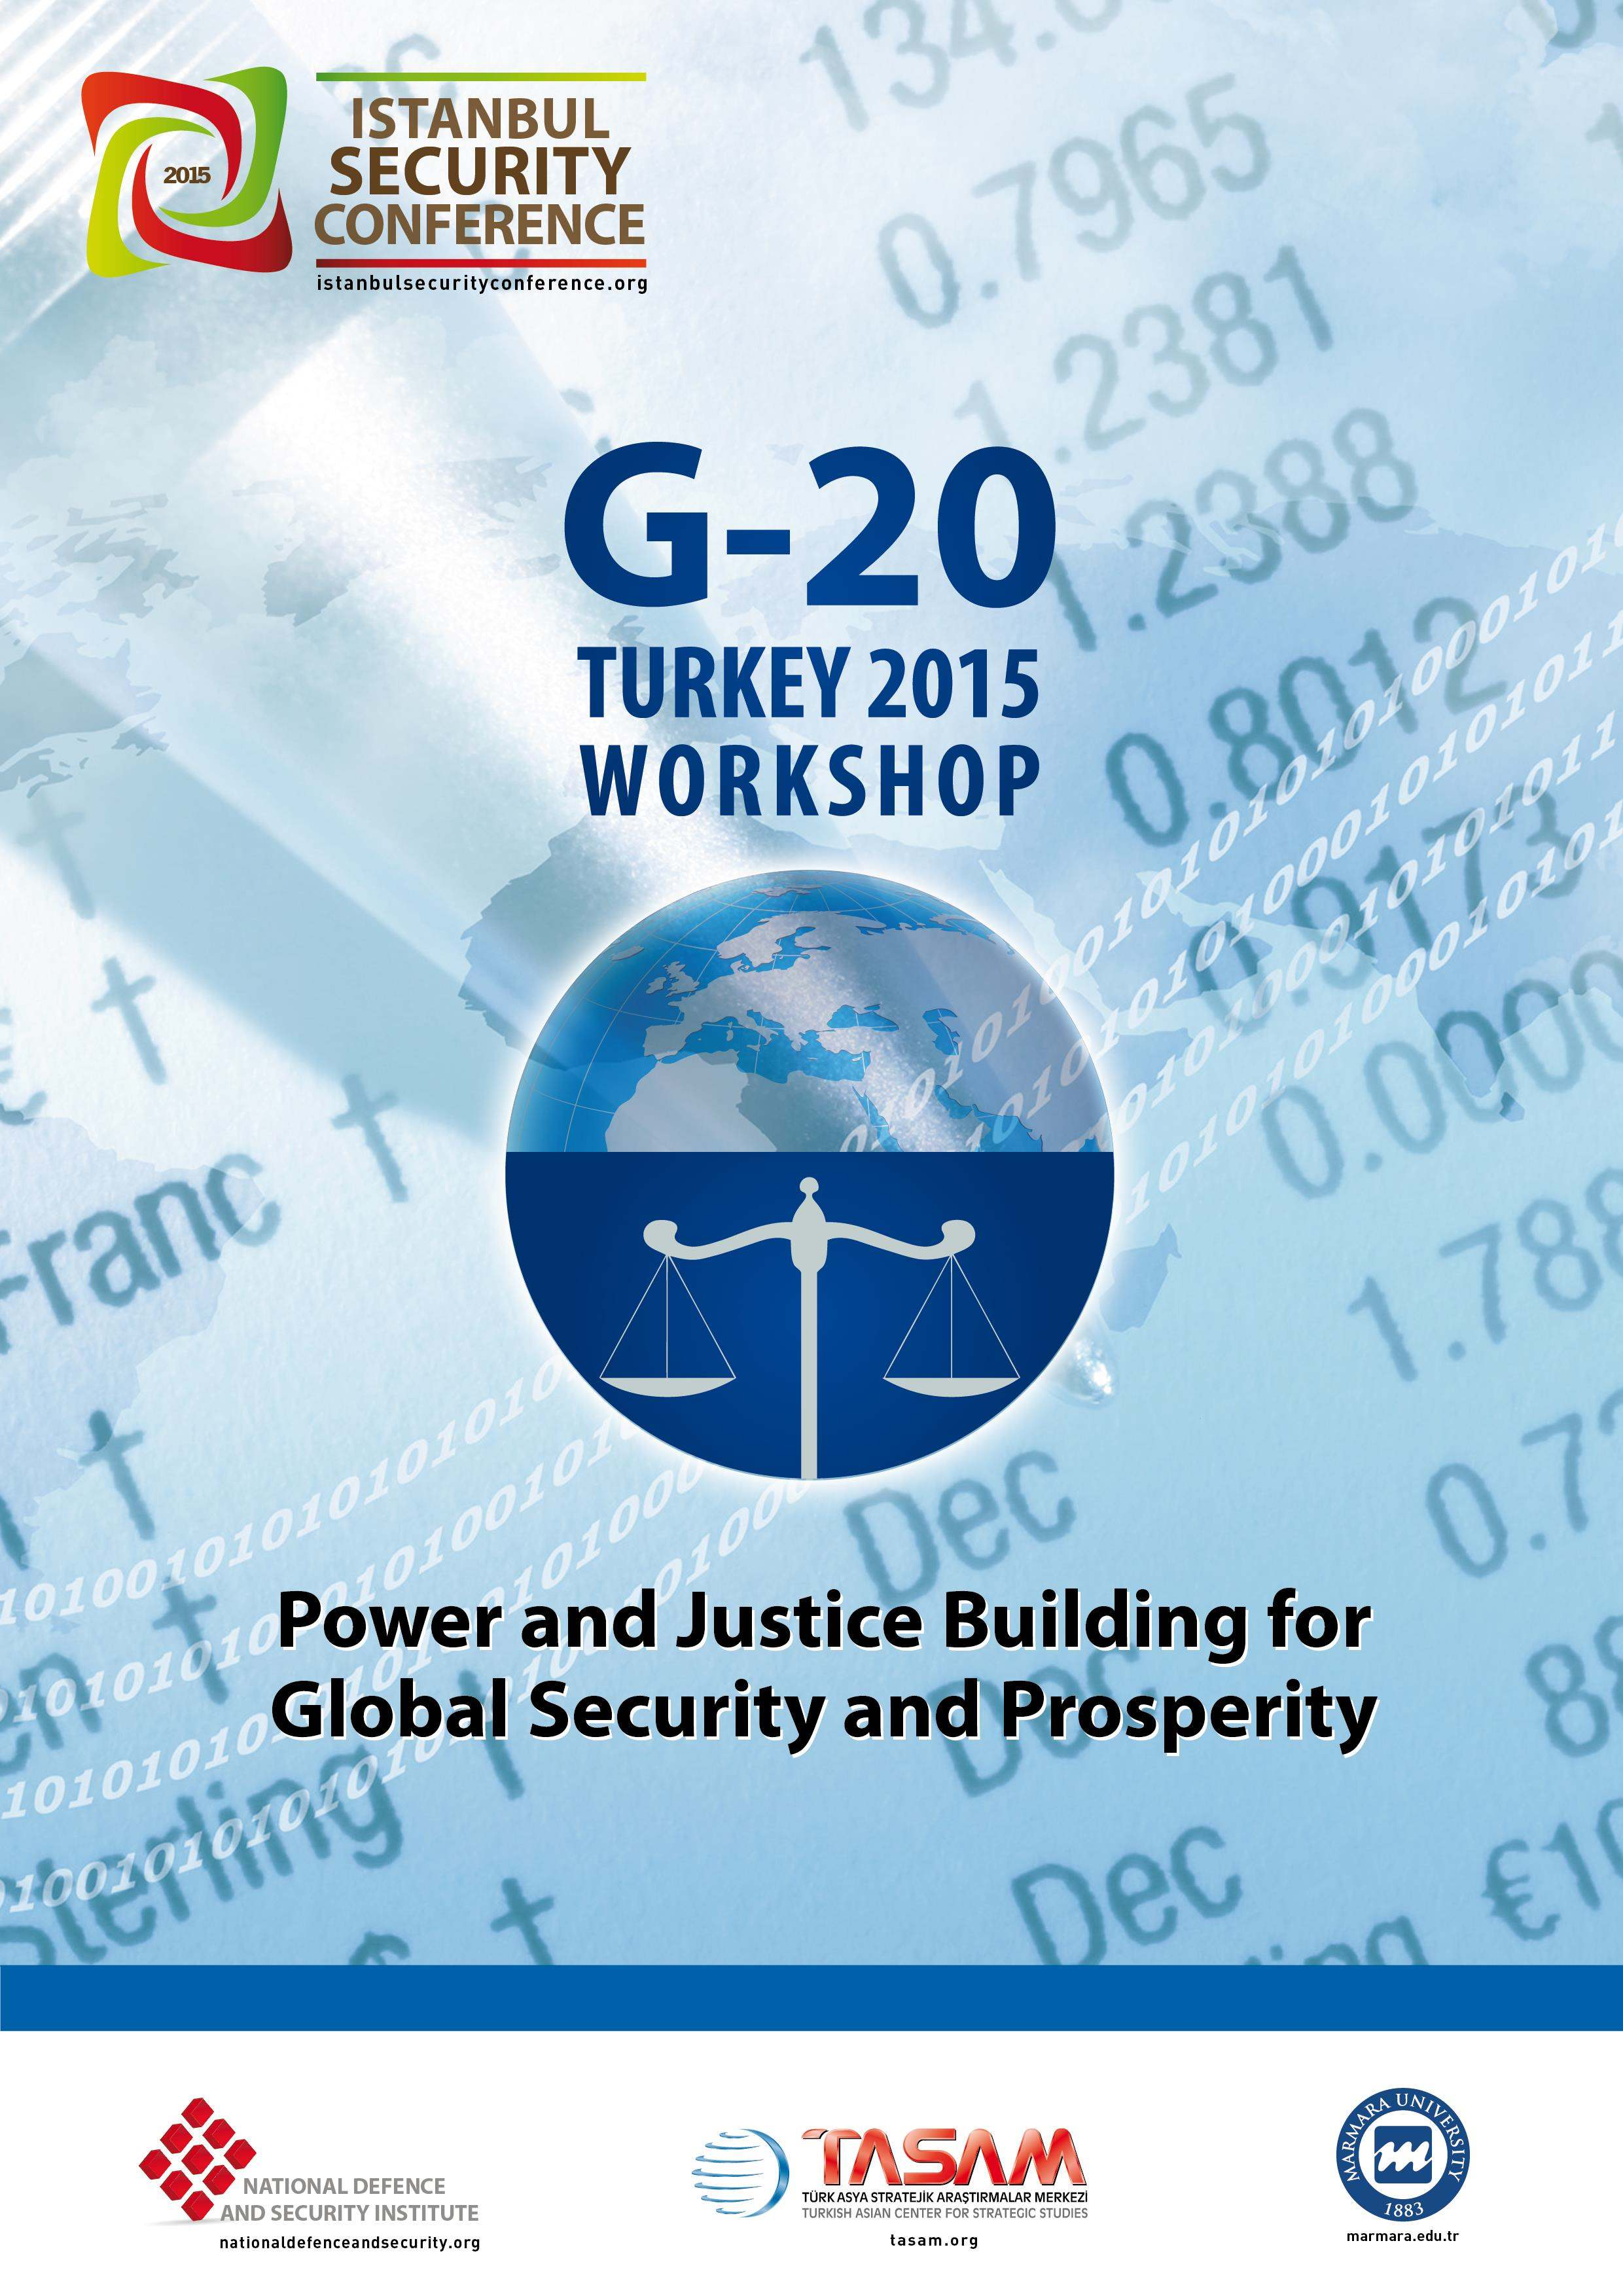 G-20 Turkey 2015 Workshop | Istanbul Security Conference 2015